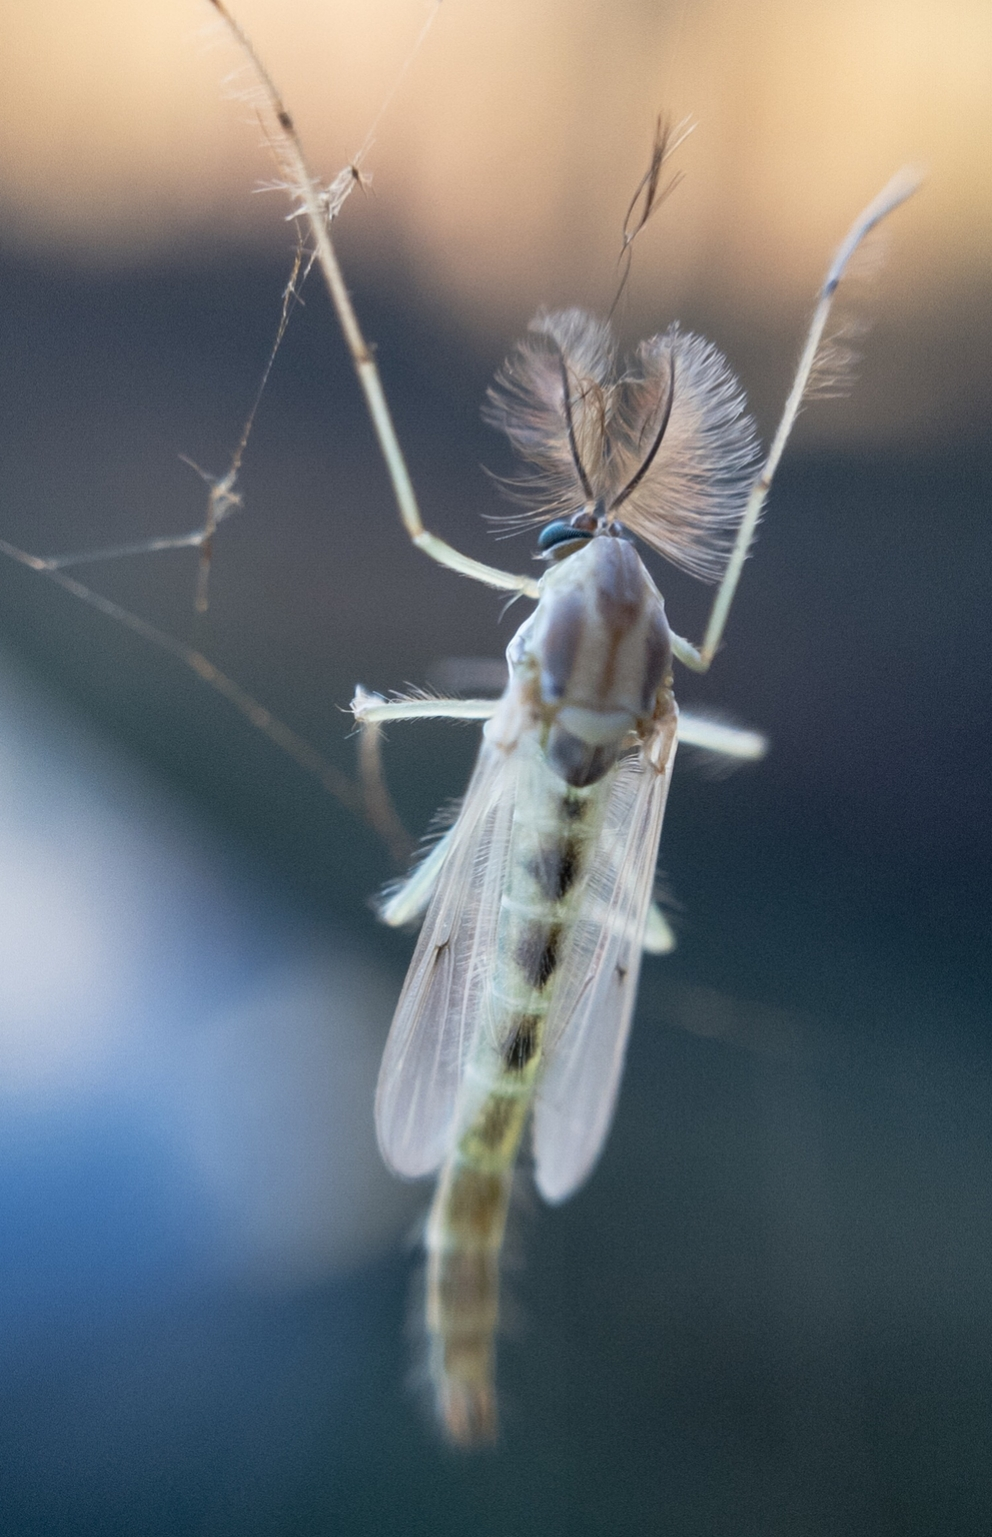 A male Non-biting Midge. Photo by Tony Iwane, taken on an iPhone with clip-on macro lens